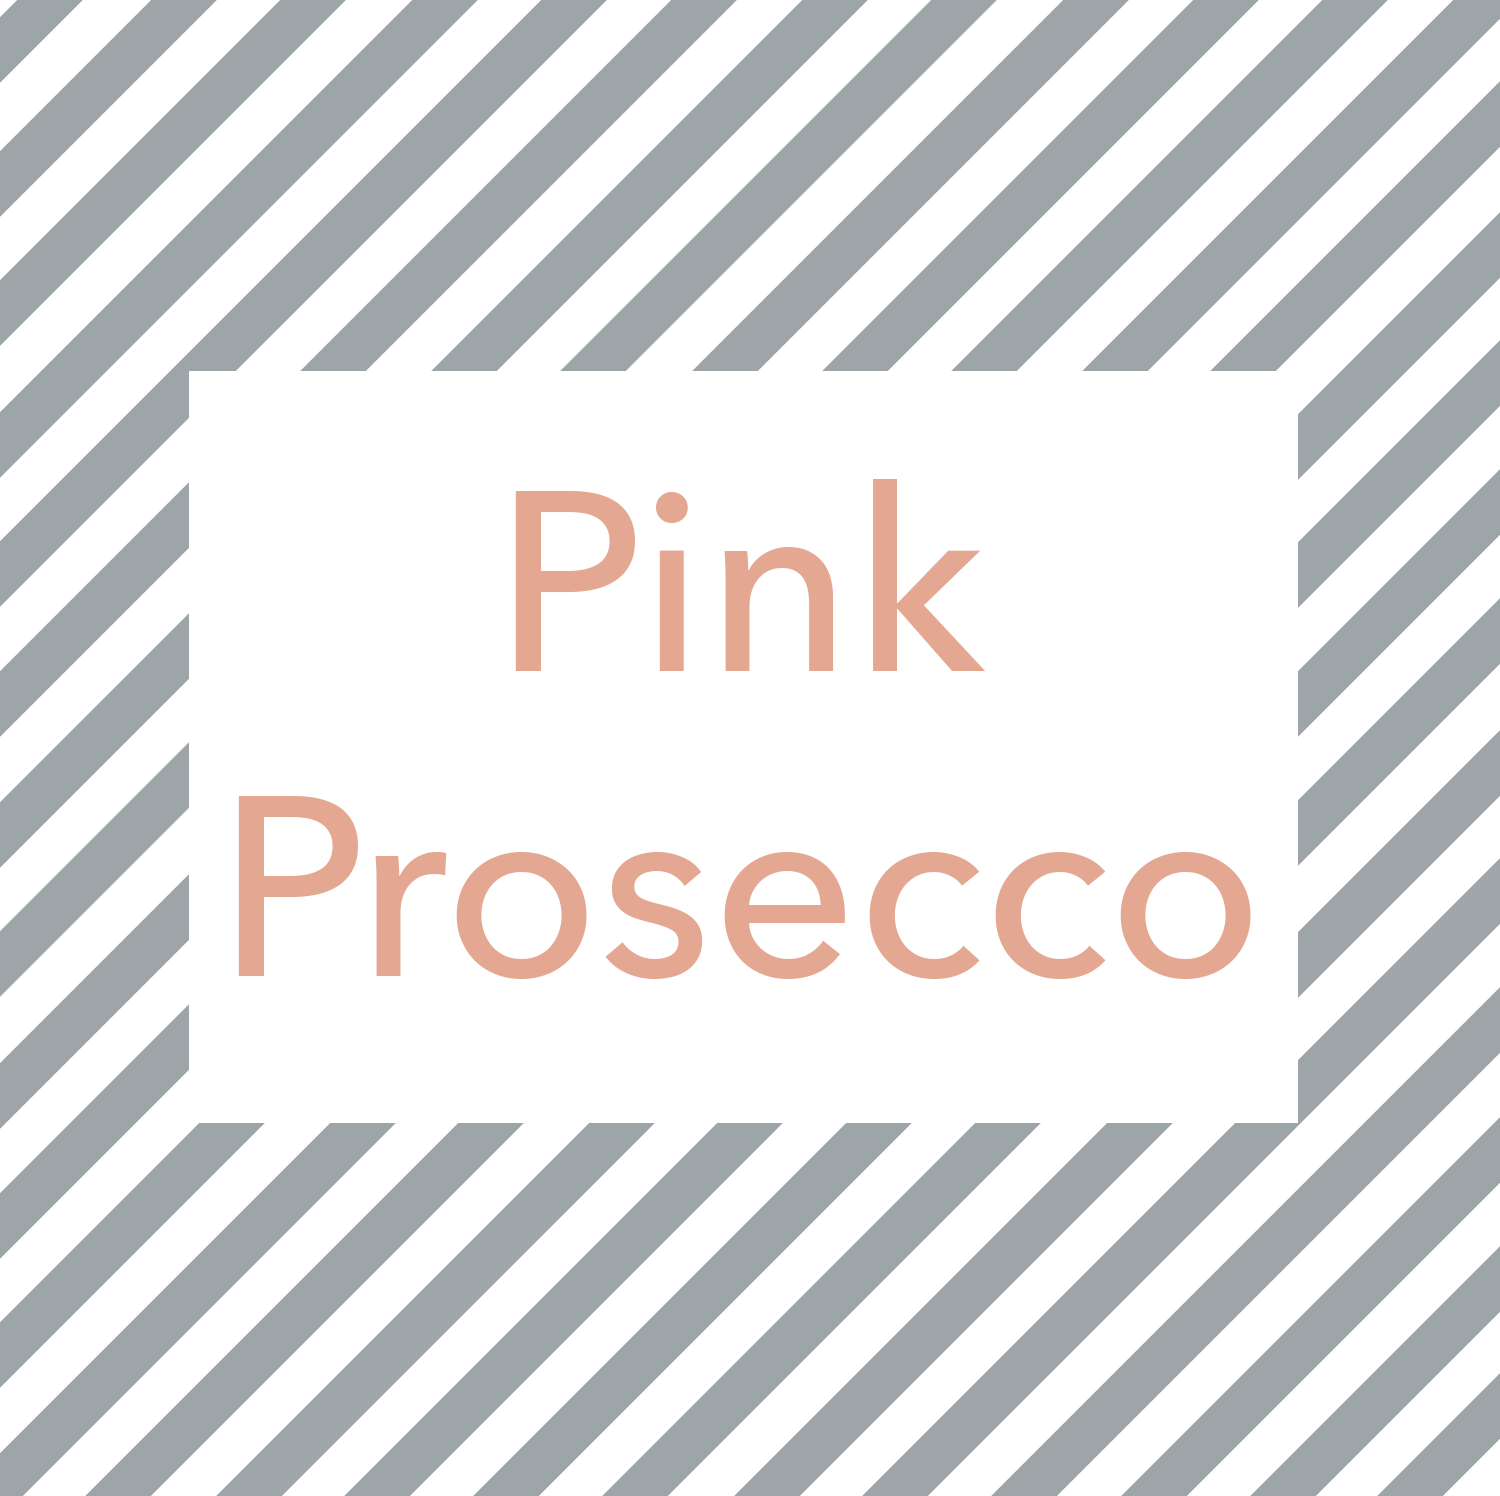 pink_prosecco.png